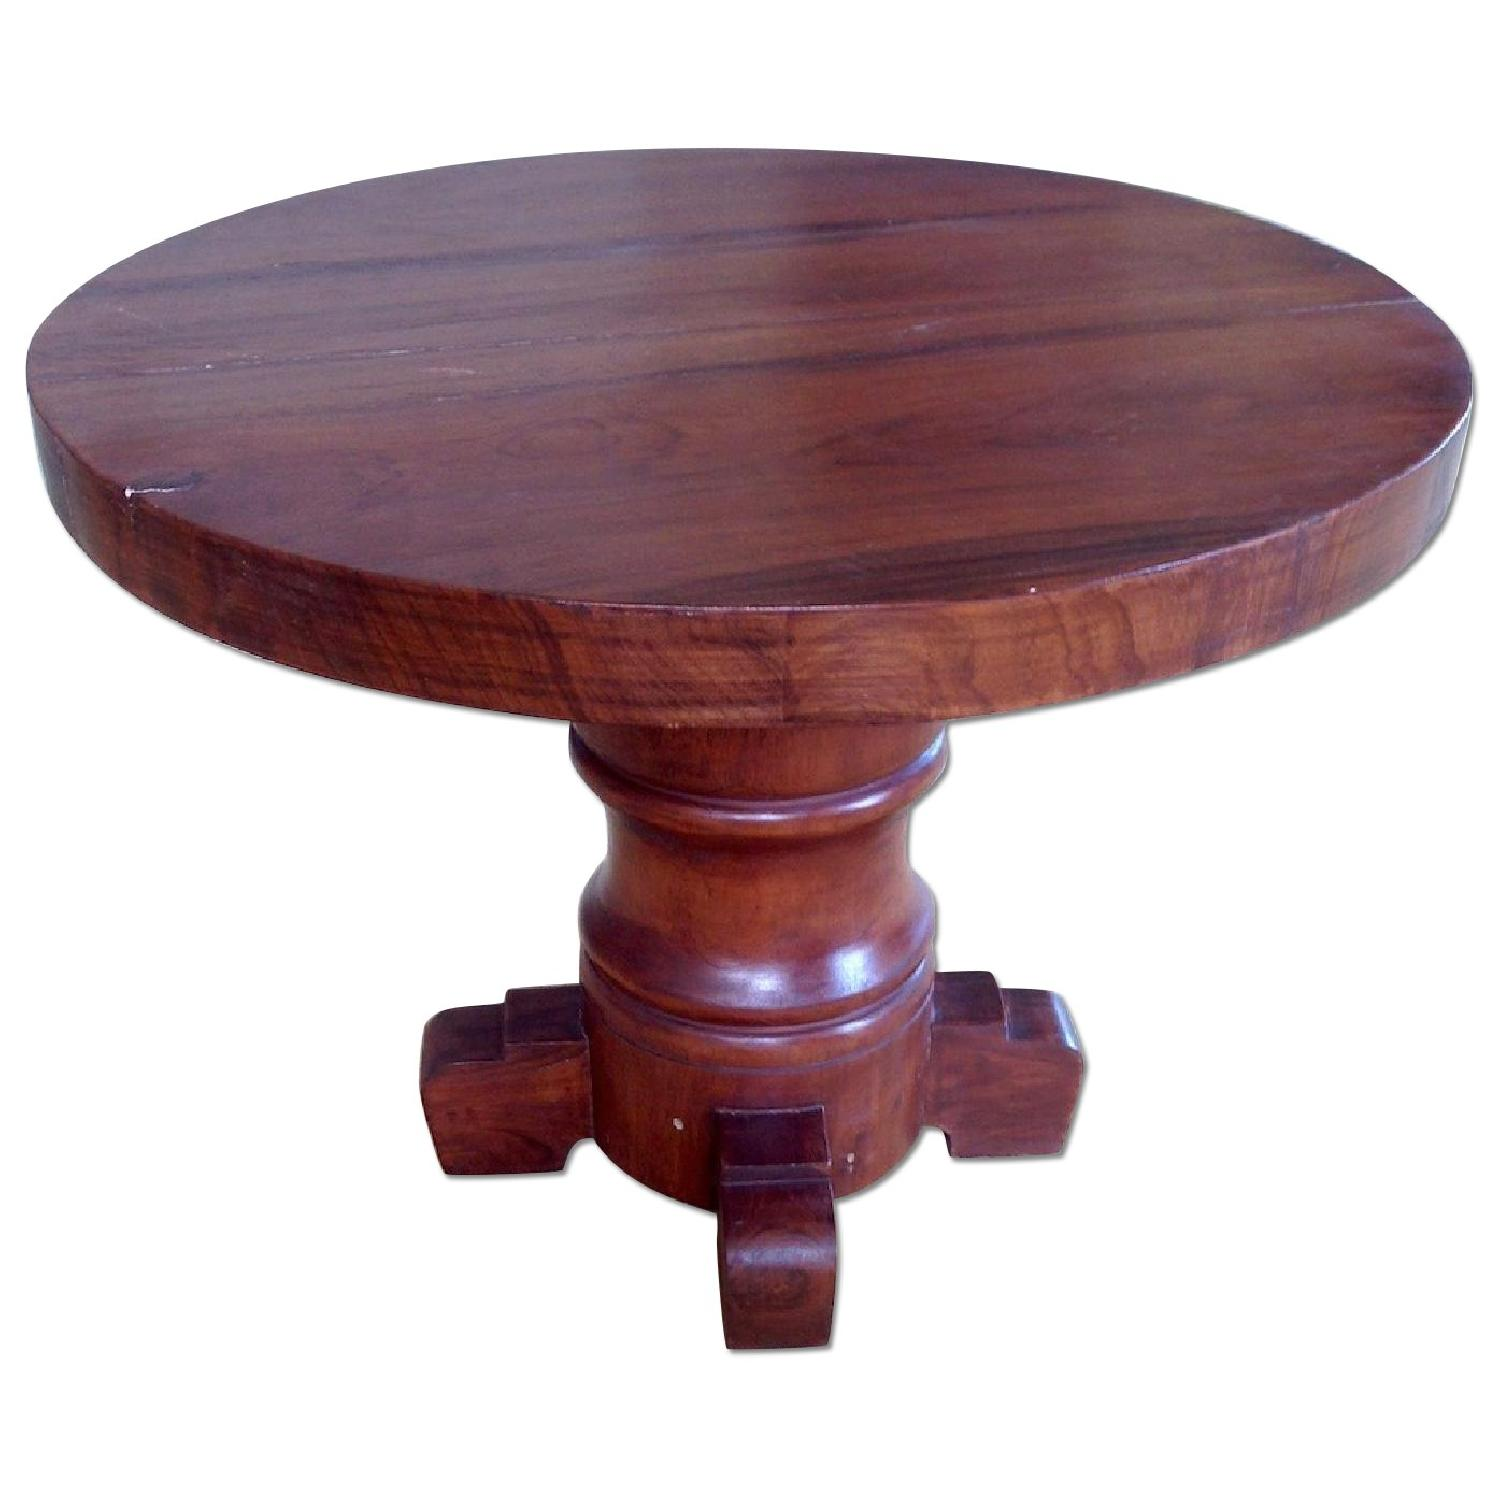 ABC Carpet & Home Round Wooden Table - image-0